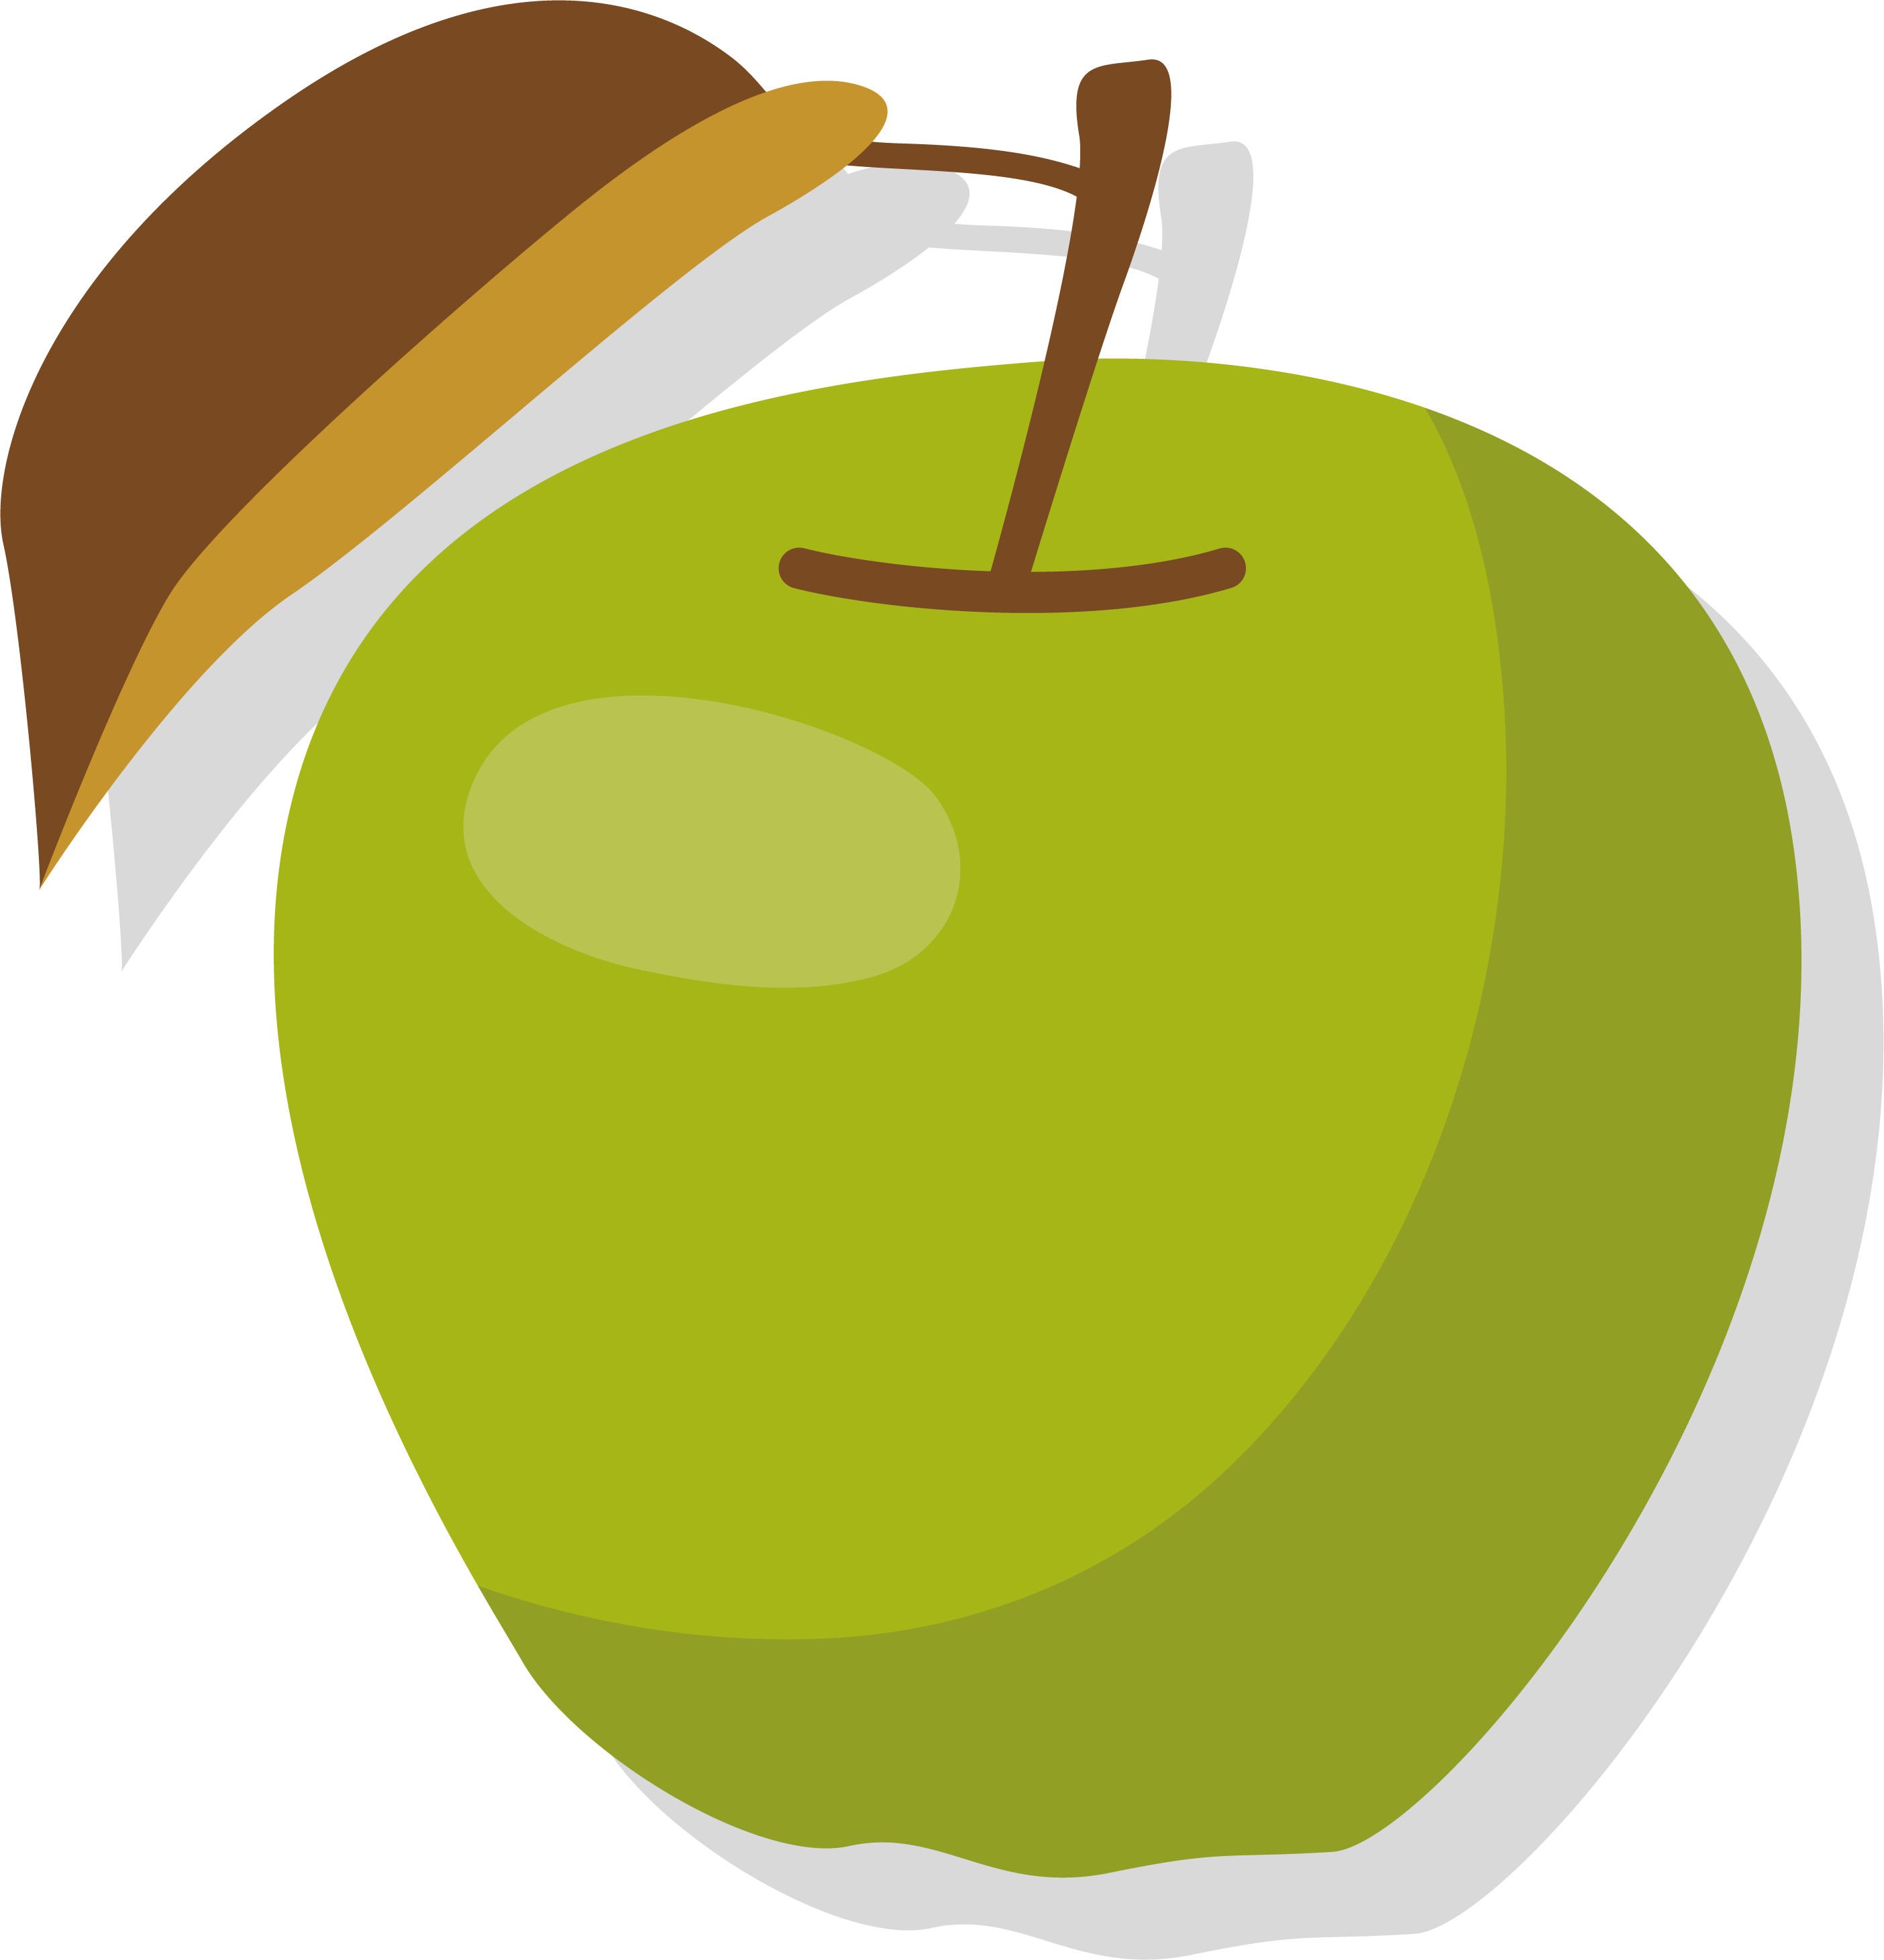 Apple manzana verde clip. Peaches clipart ripe fruit